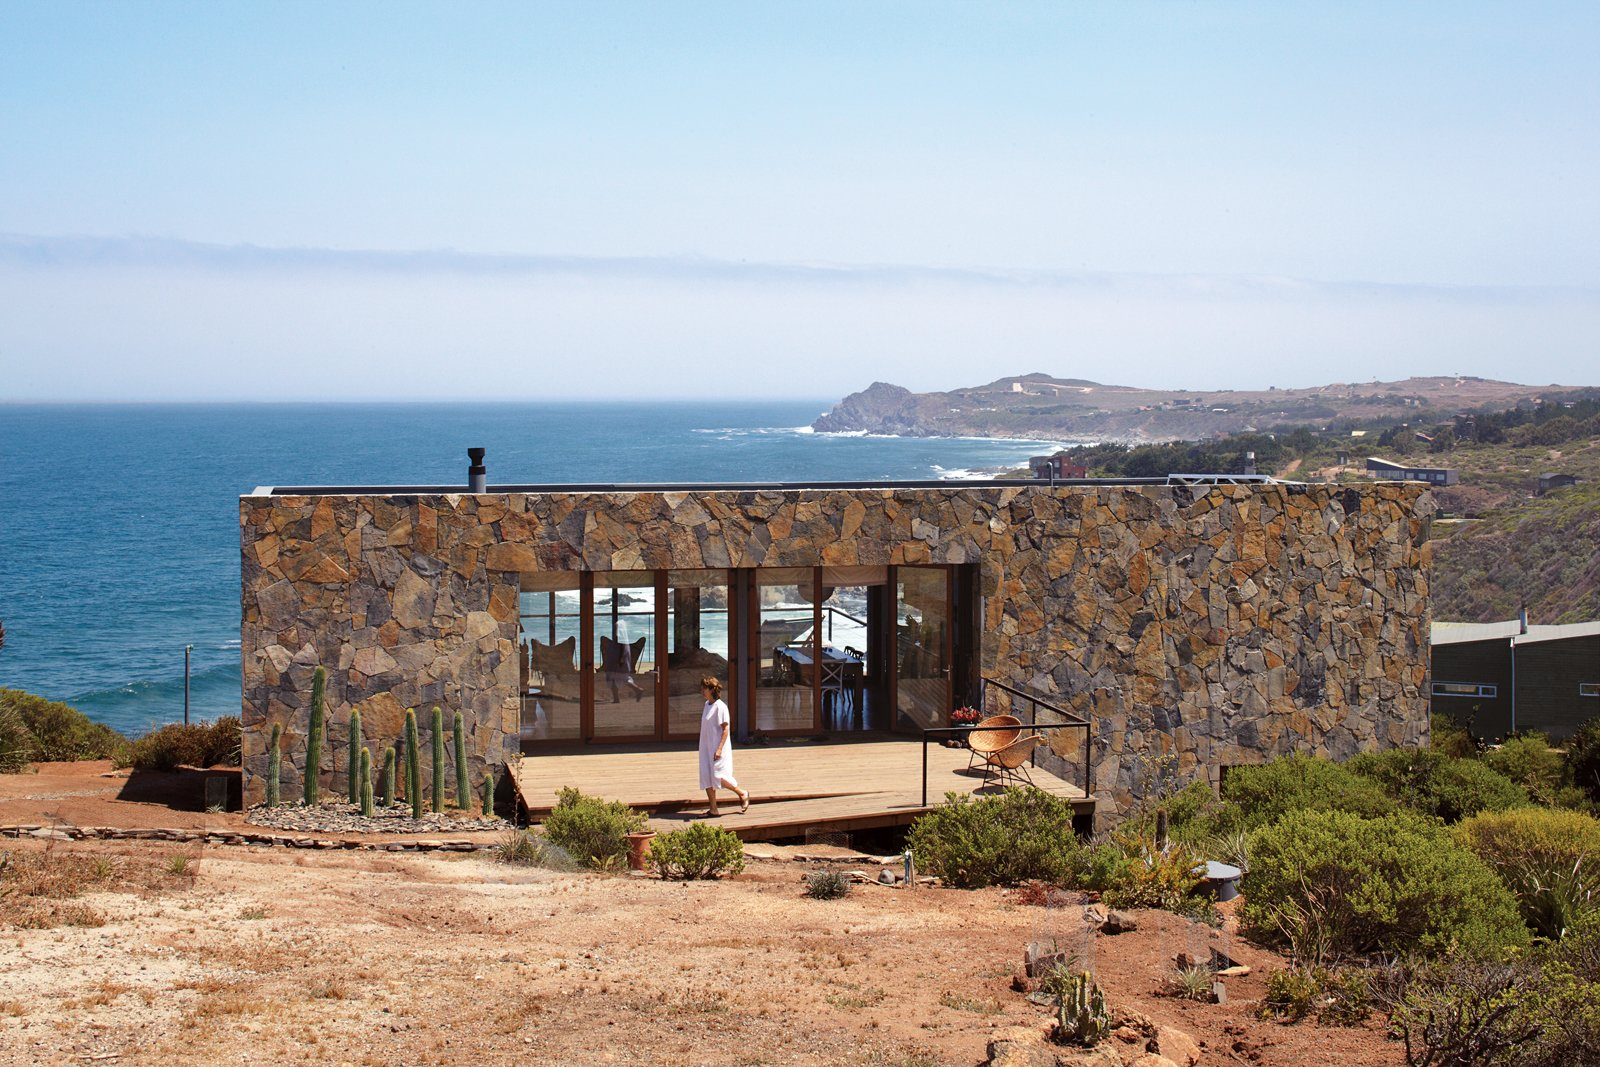 The Casa Cuatro sits above a 180-foot cliff that overlooks the Pacific Ocean. The locally quarried stone makes the house blend in with the landscape and acts as a thermal-mass wall, absorbing heat during the day and releasing it through the evening. Tagged: Shrubs, Back Yard, Exterior, Stone Siding Material, and House.  The Most Popular Homes in Dwell: 81-100 by Diana Budds from Tunquen Treasure